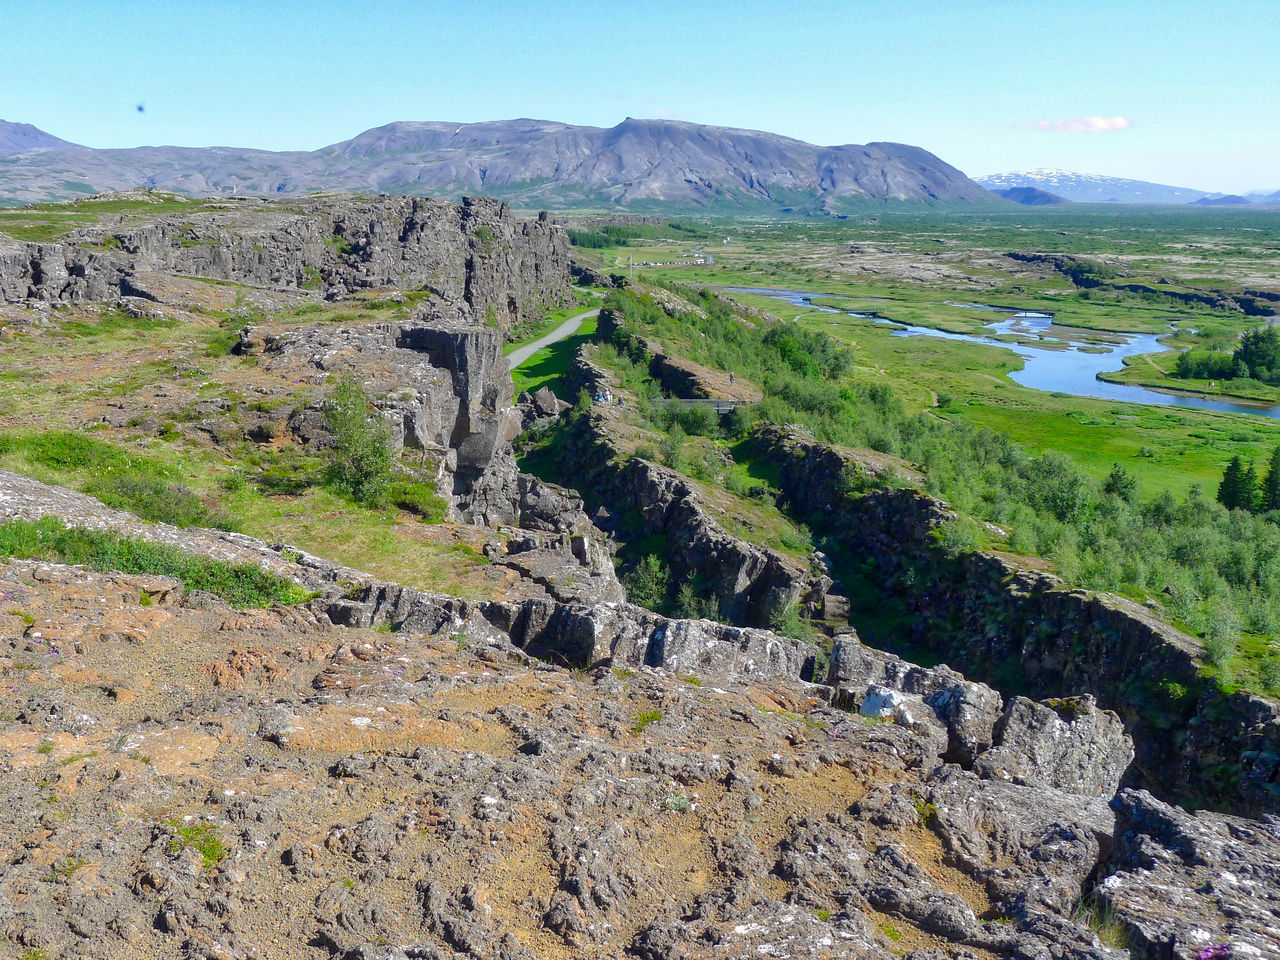 Here you can see the movement of the Eurasian and North-American plate boundaries that run through Iceland. Beauty In Nature Day Grass Green Color Iceland Landscape Mountain Nature No People Outdoors Scenics Sky Thingvellir Thingvellir National Park Tranquil Scene Tranquility Water þingvellir